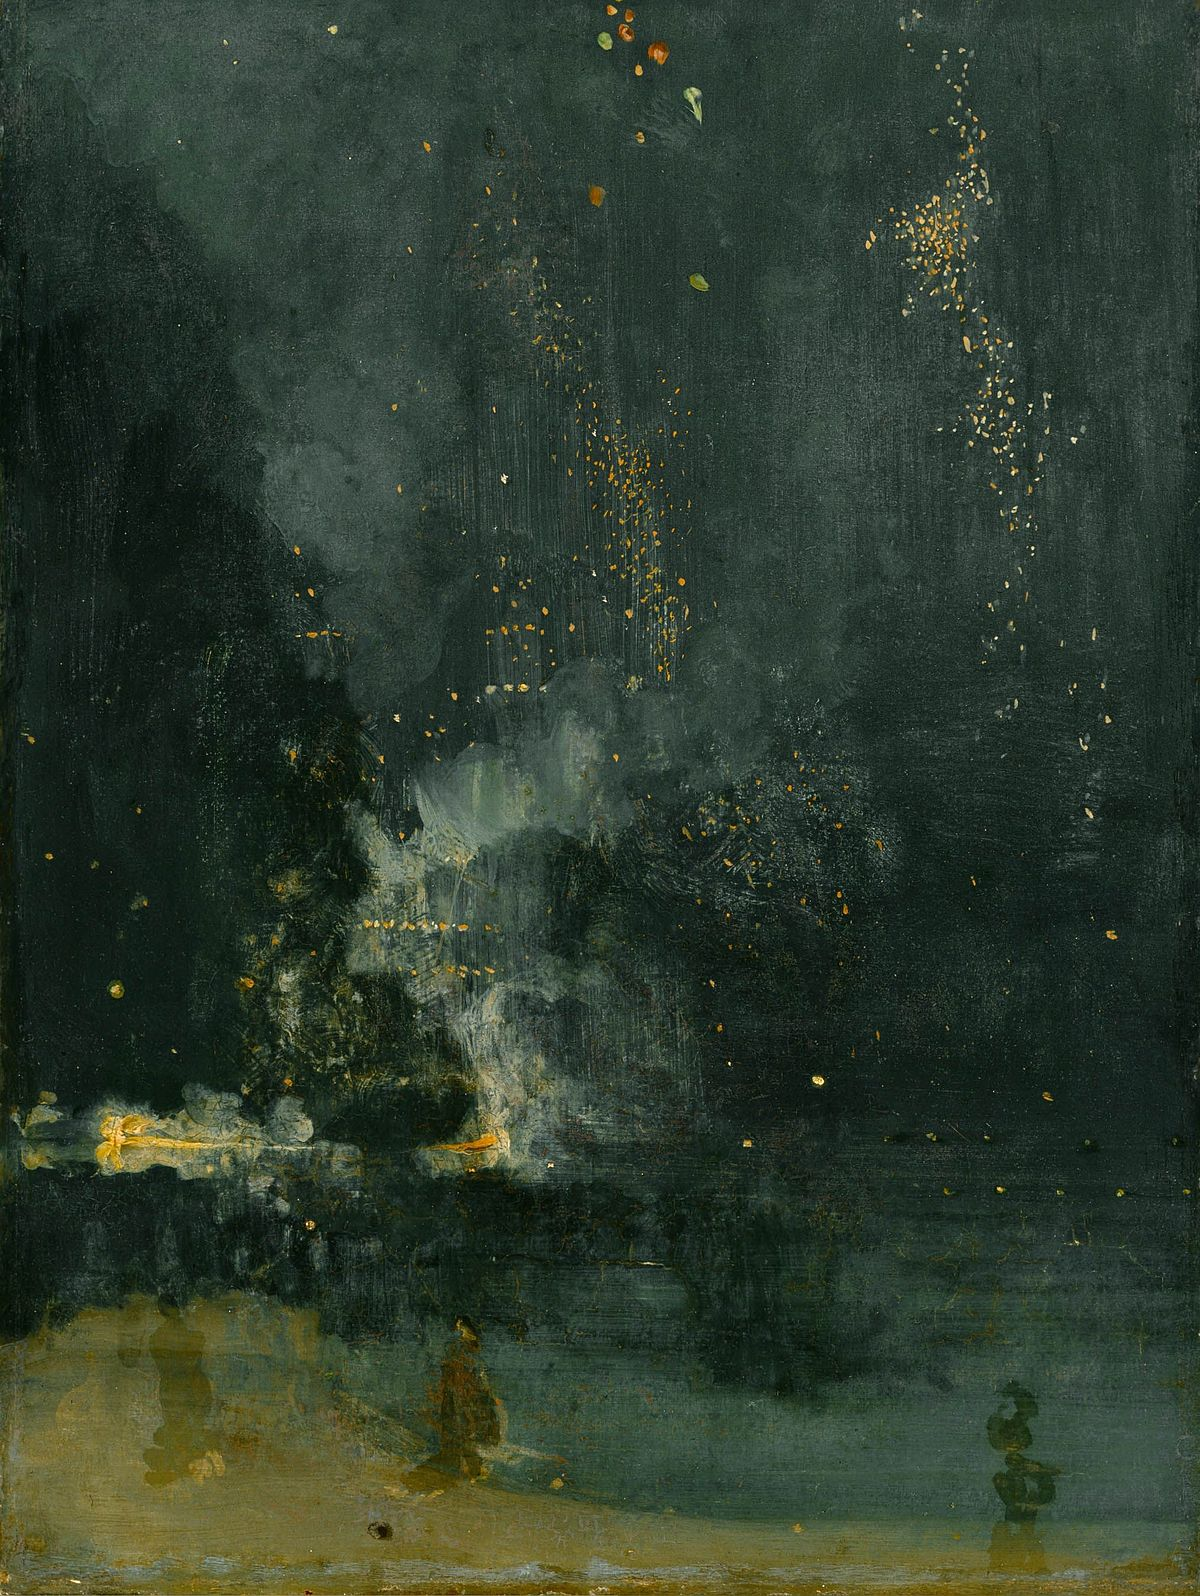 1200px Whistler Nocturne in black and gold